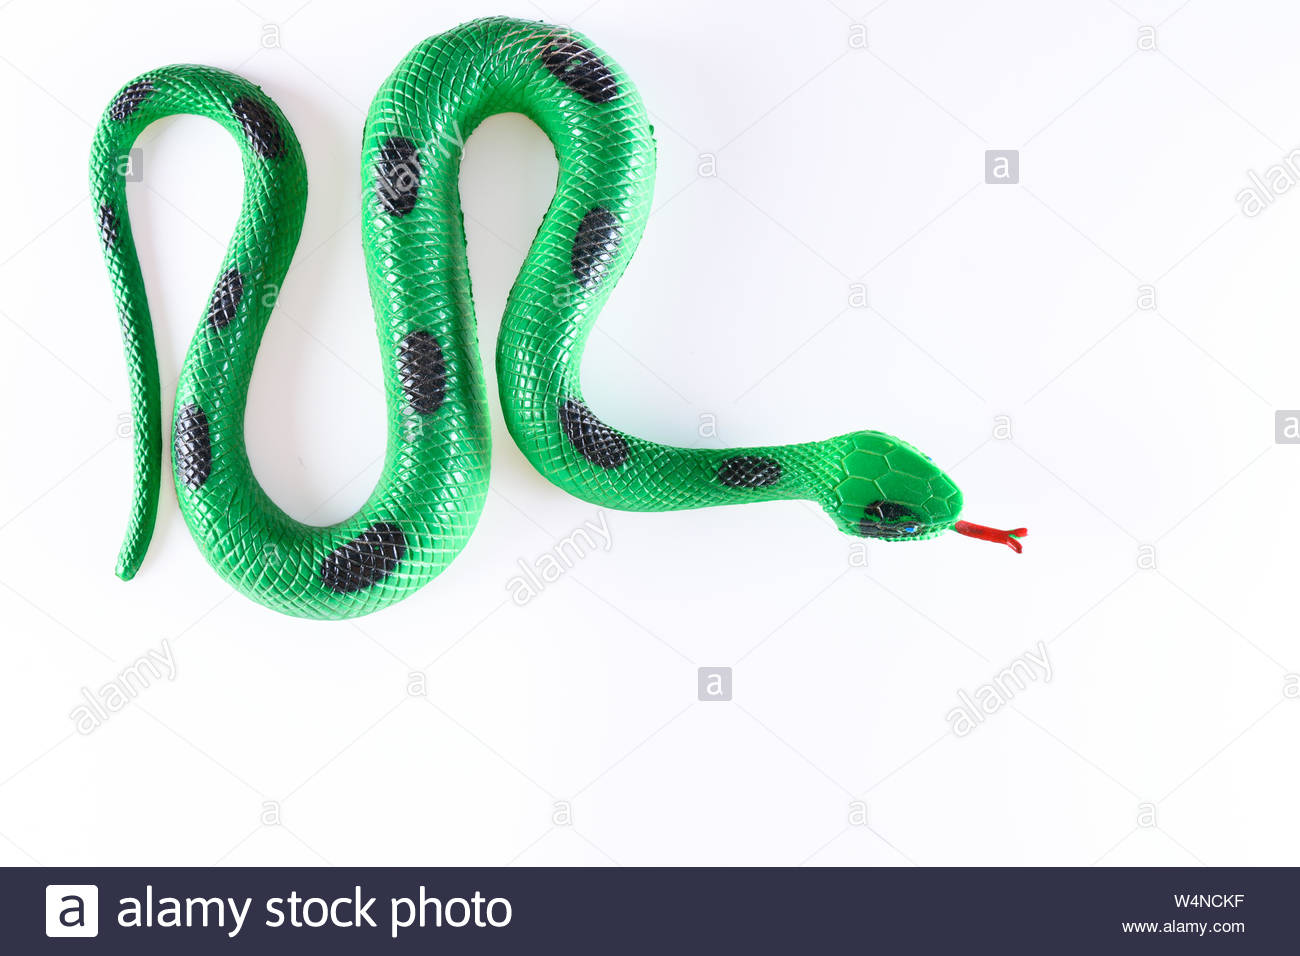 Plastic toy False snake in white background in zenith view Stock 1300x956